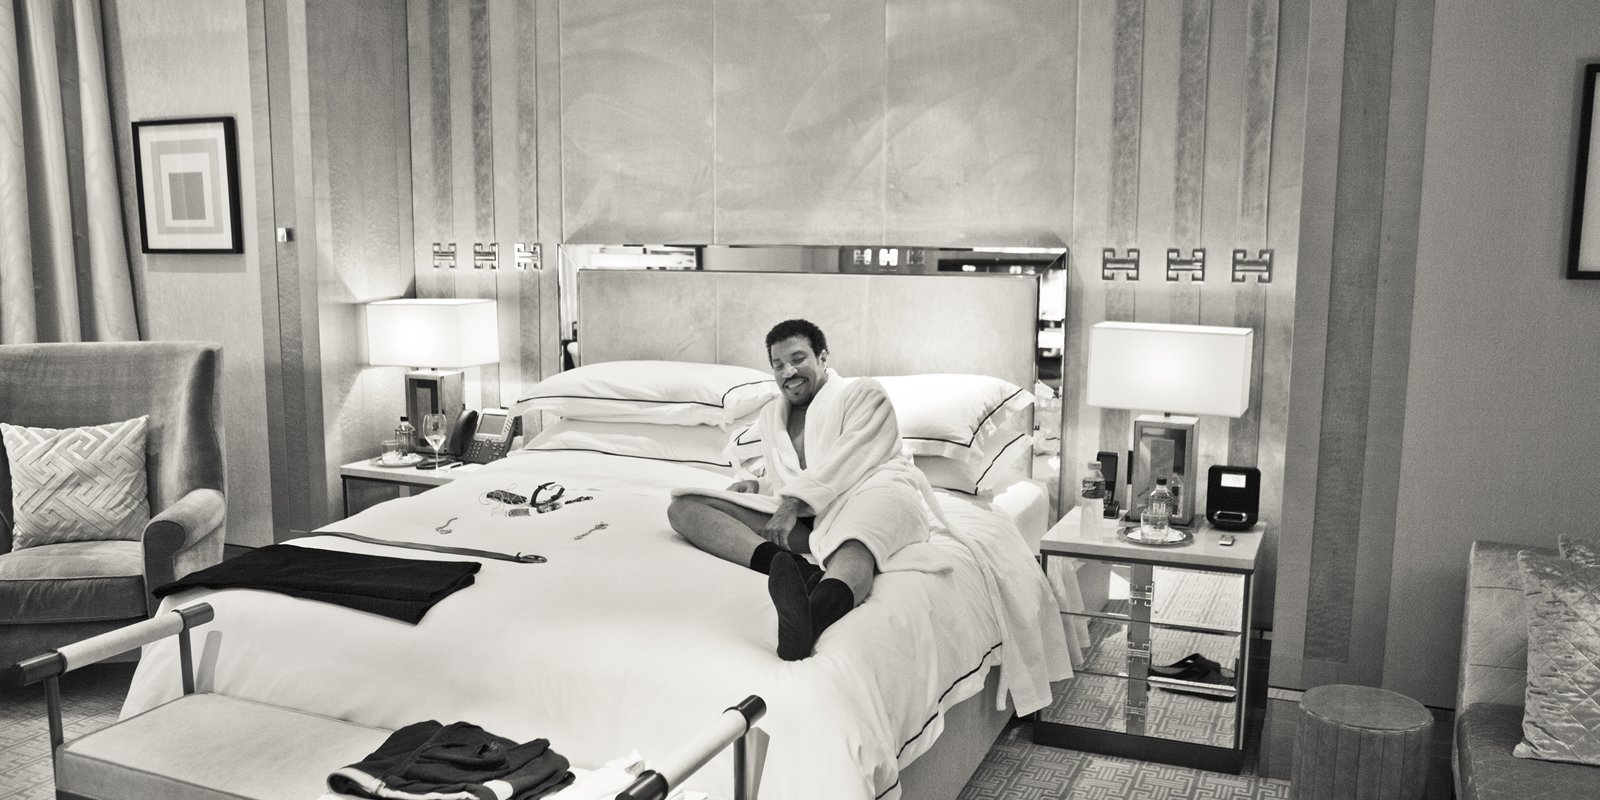 45-park-lane-art-exhibitions-lionel-richie-bed